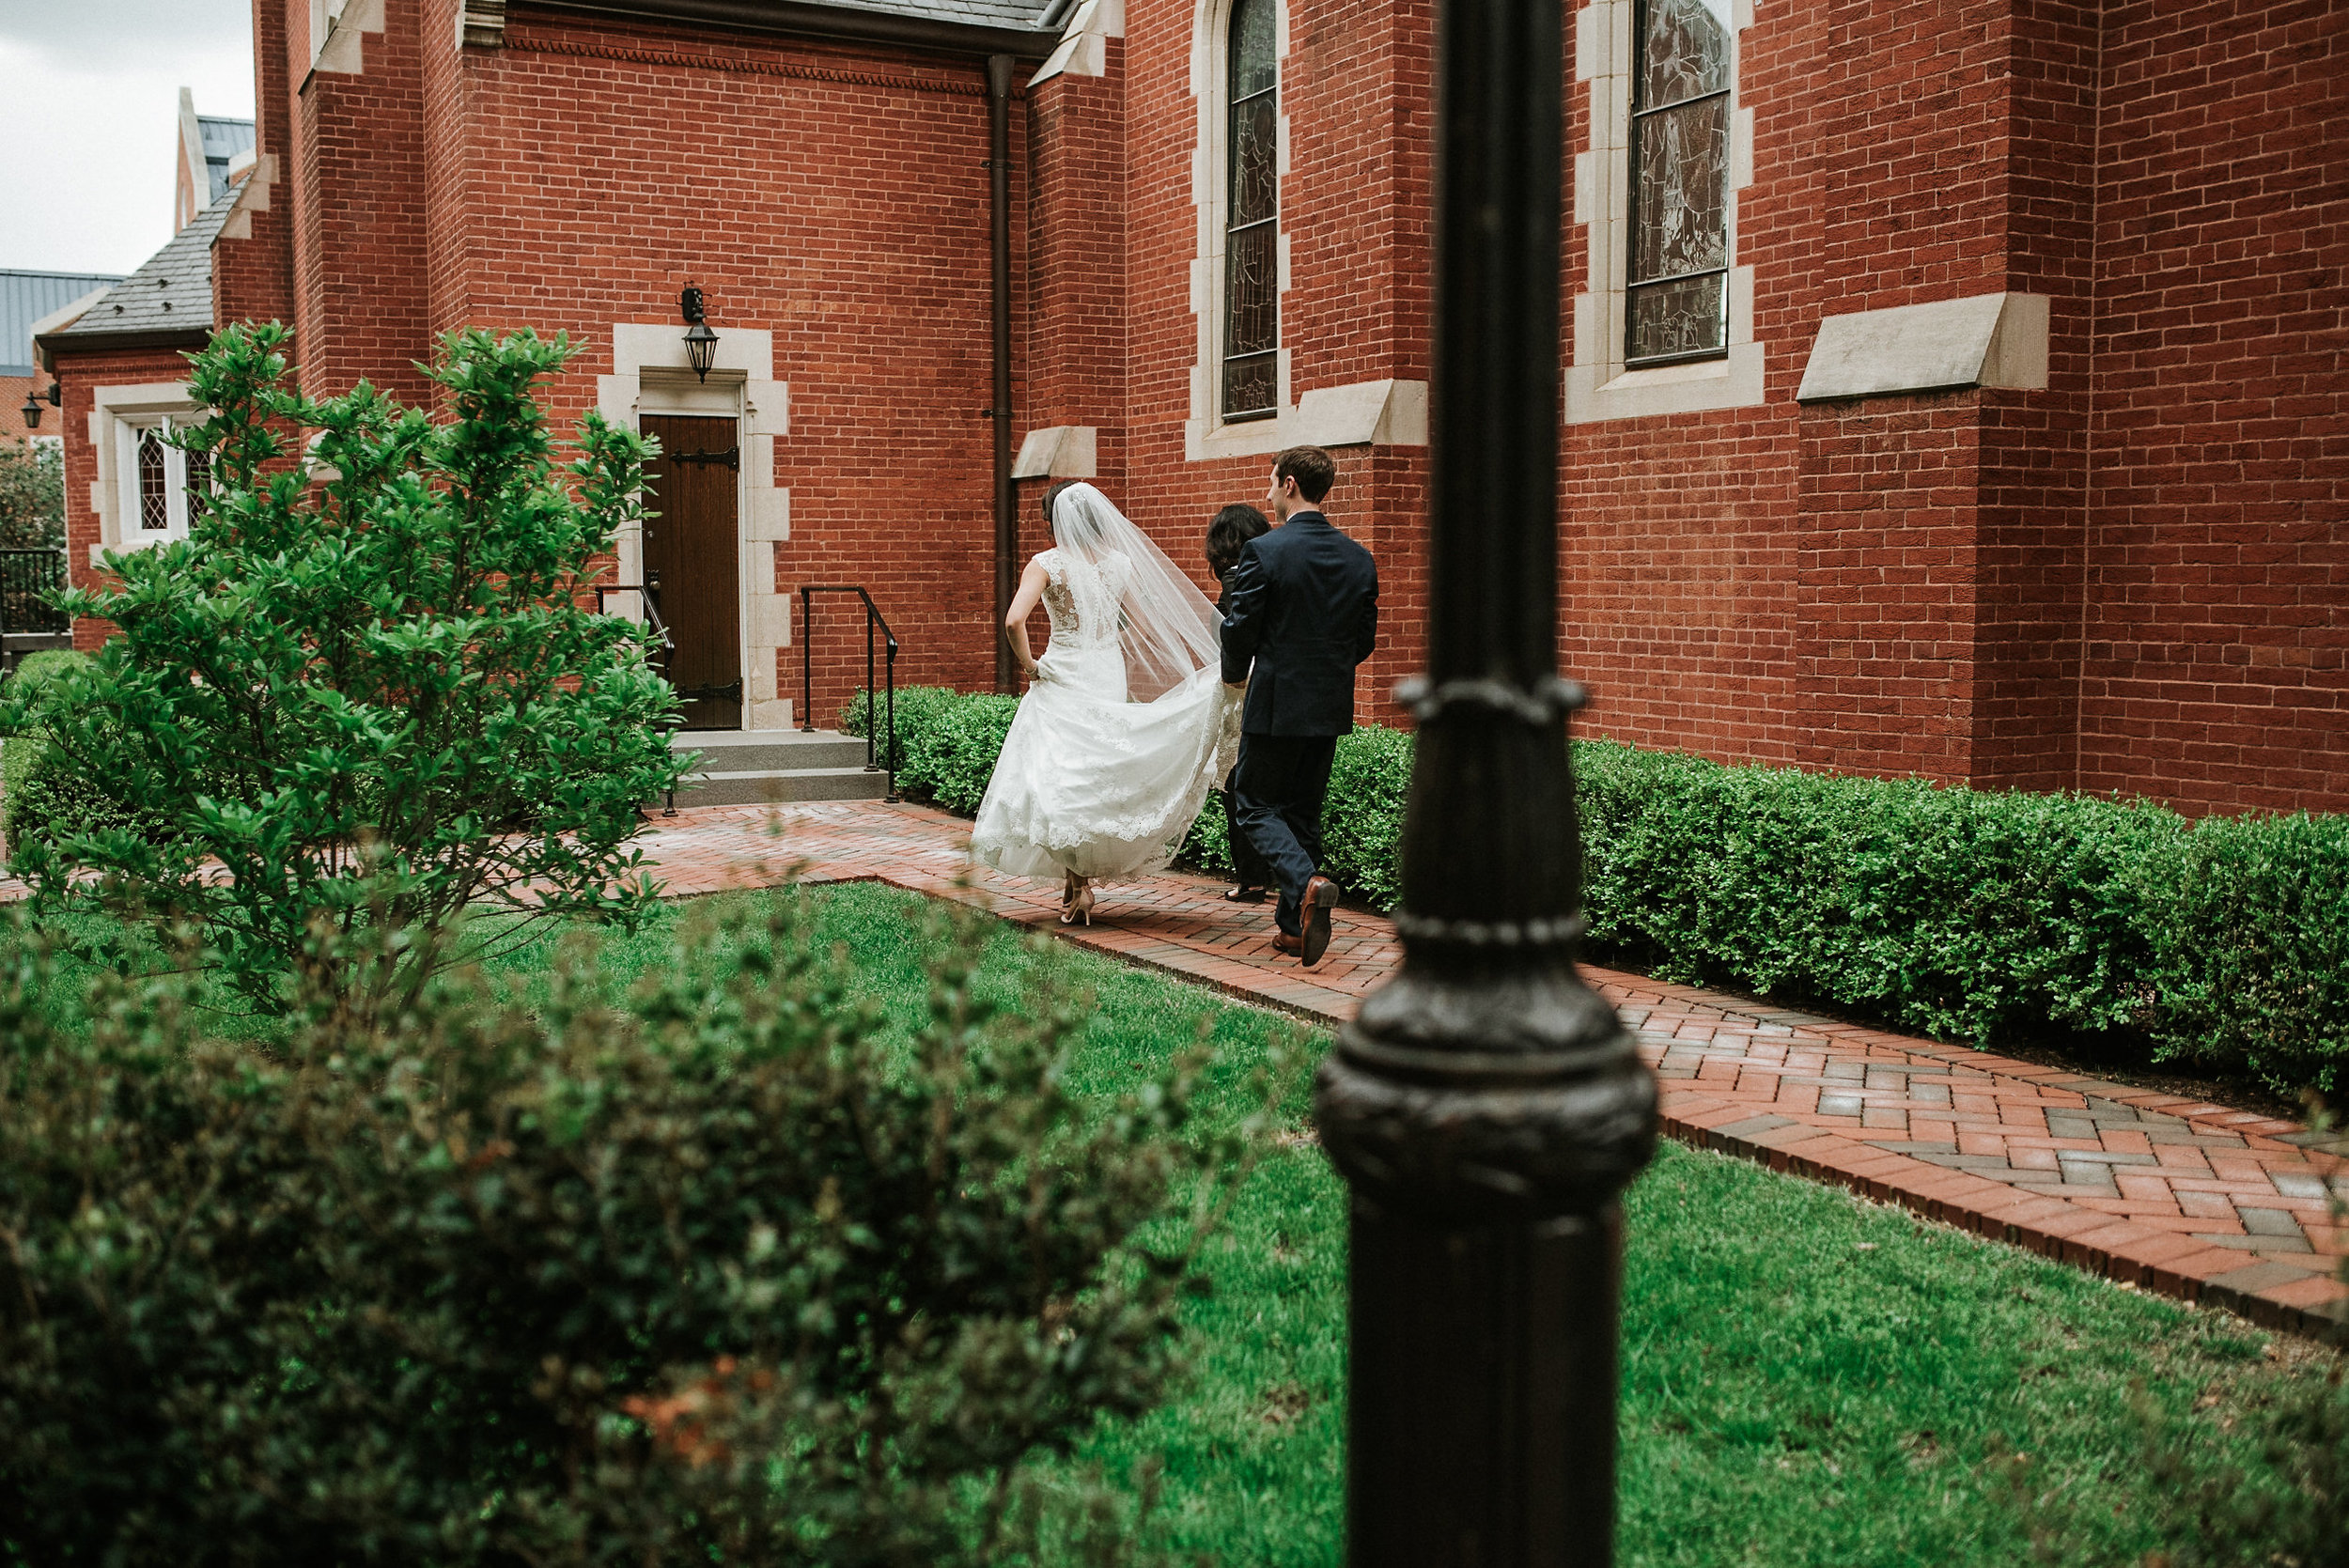 Bride and groom running behind church